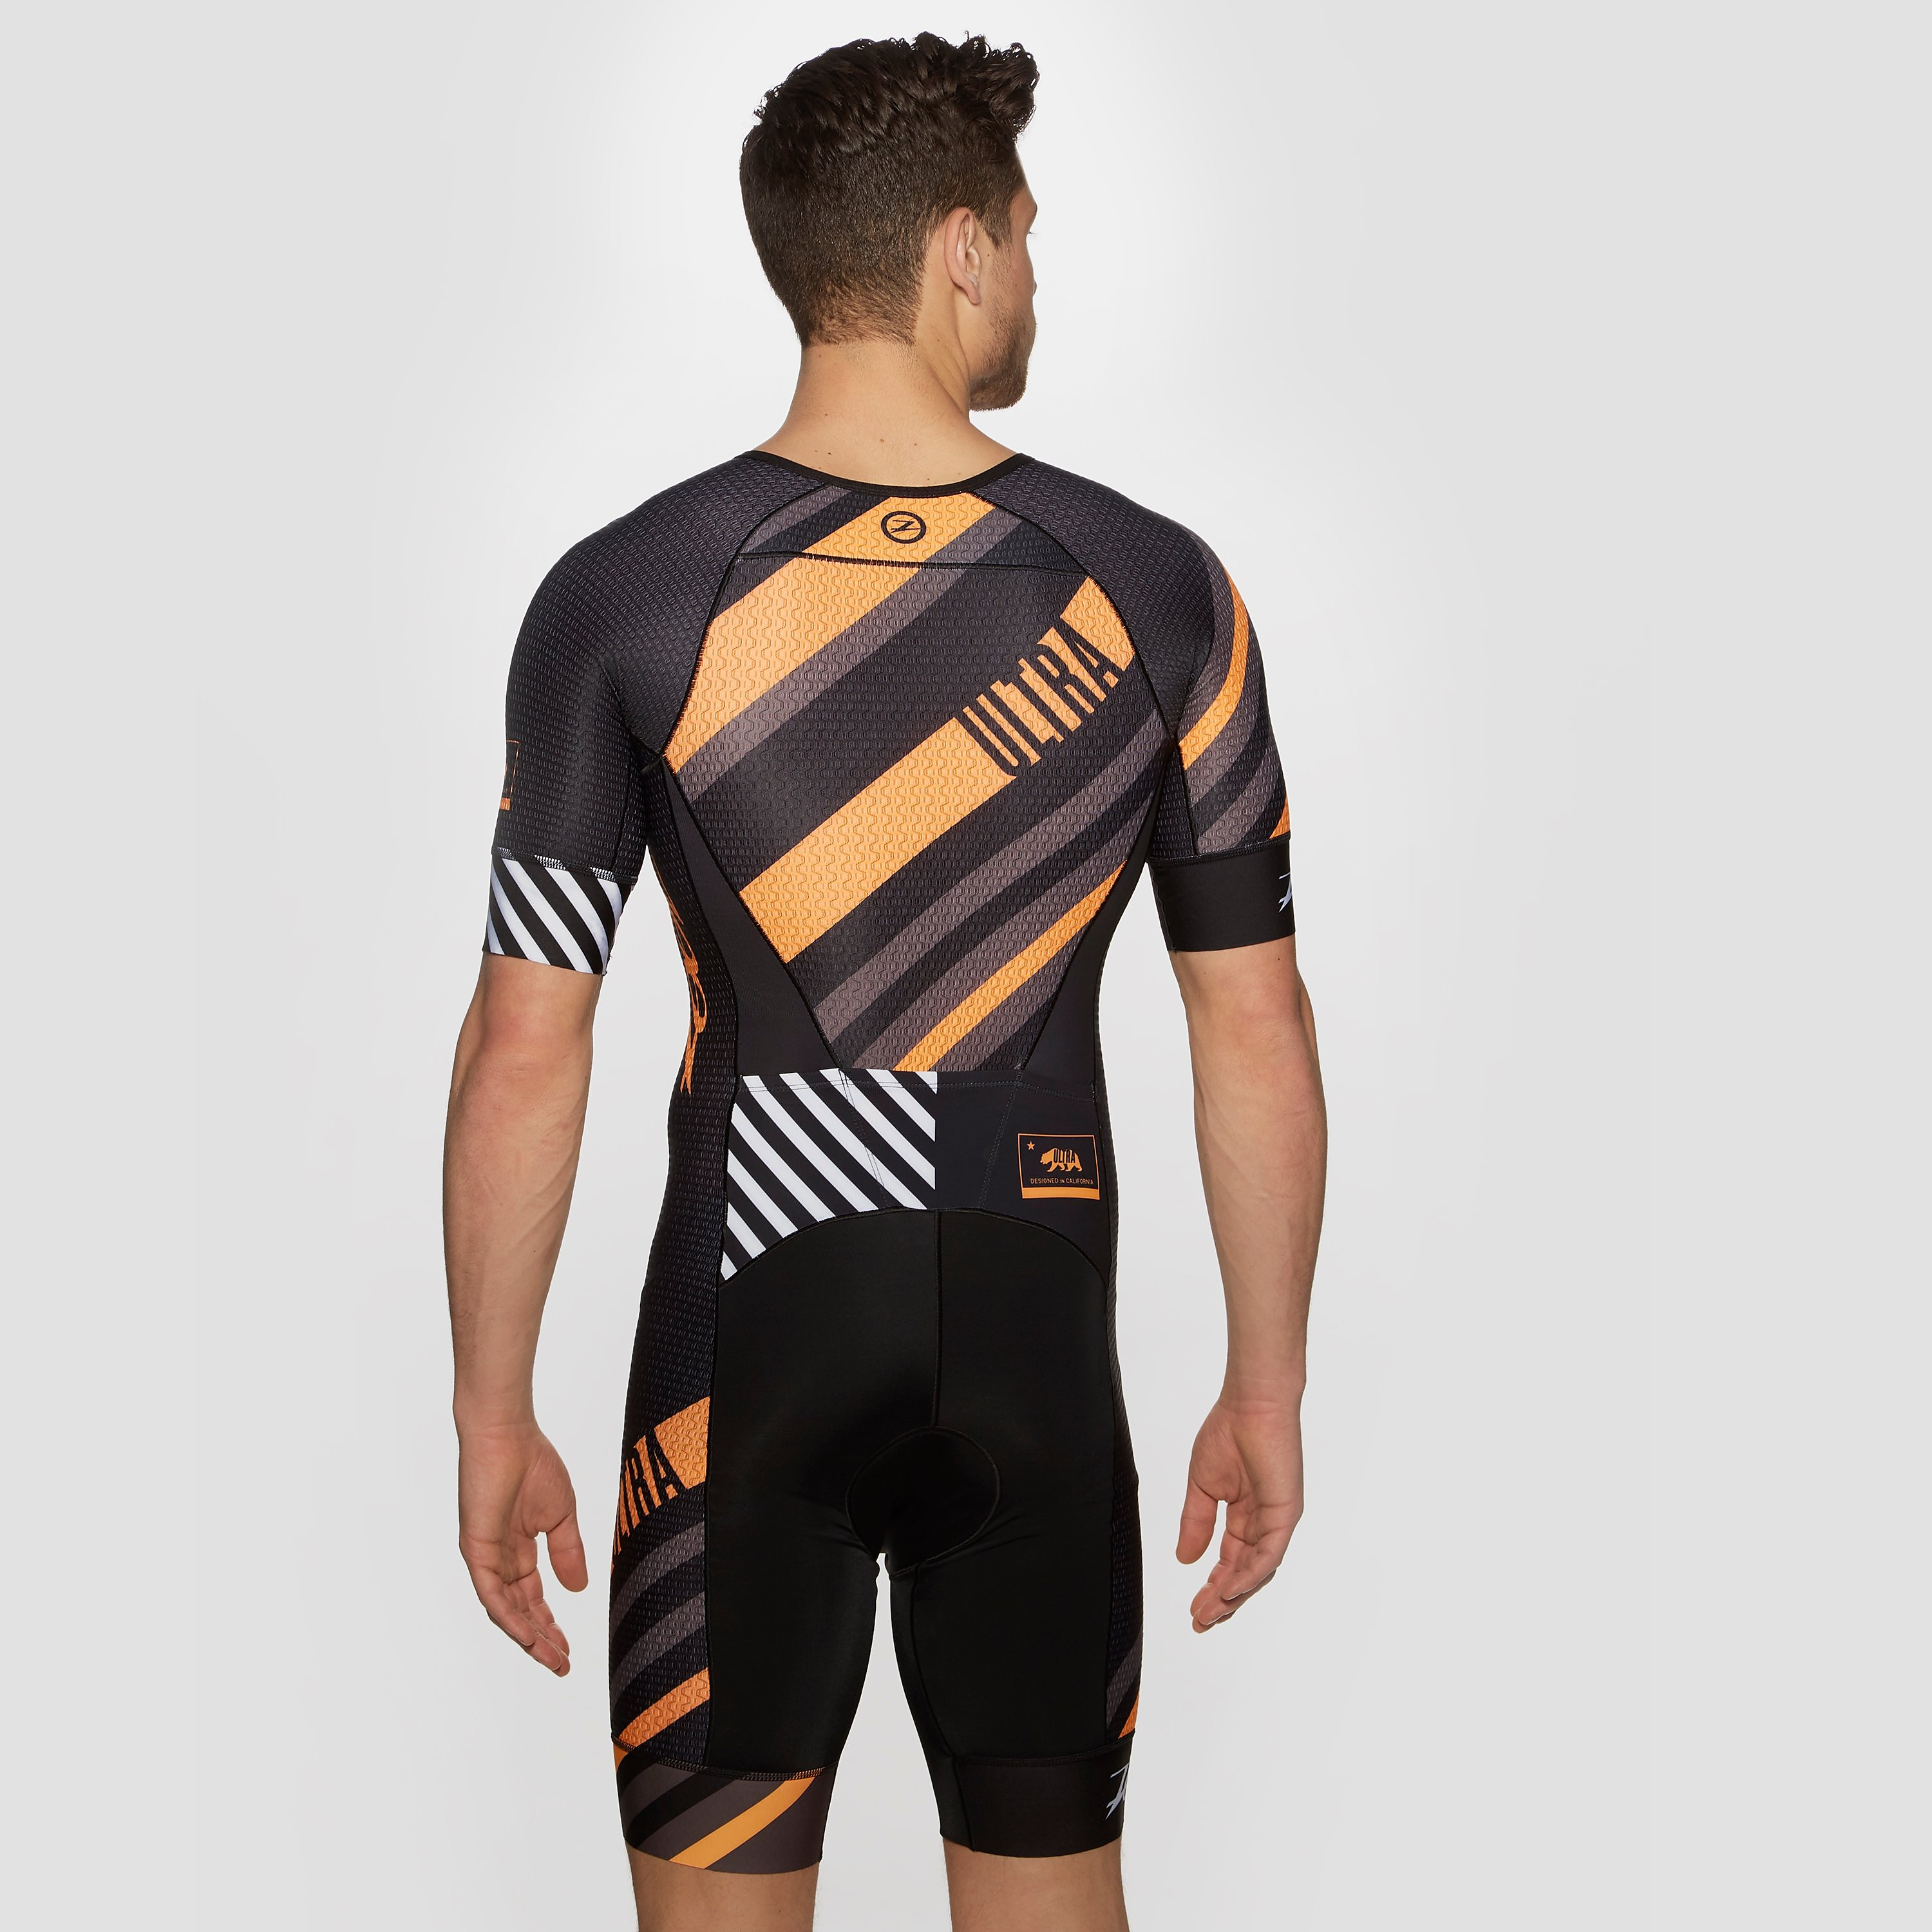 Zoot Ultra Tri Aero Men's Triathlon Skinsuit